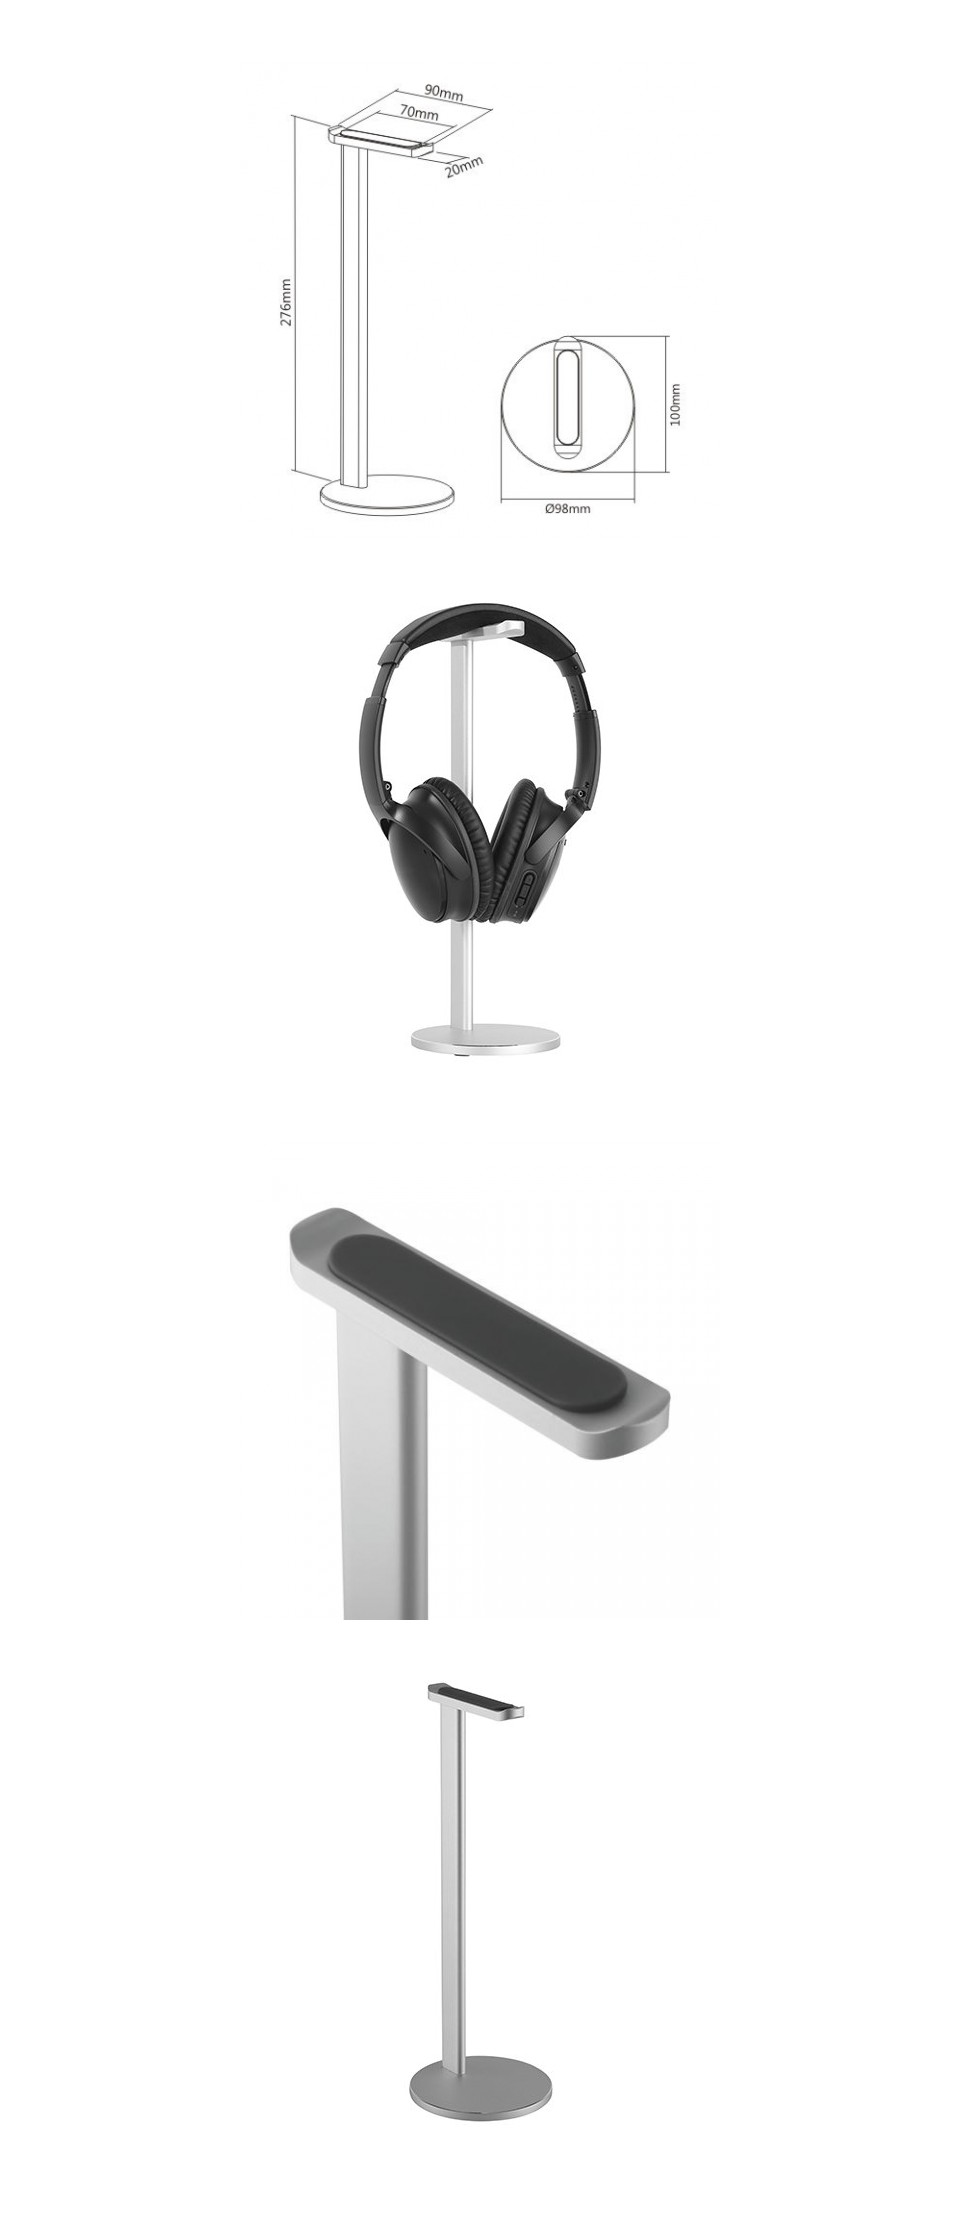 Brateck Aluminum Desktop Headphone Stand product